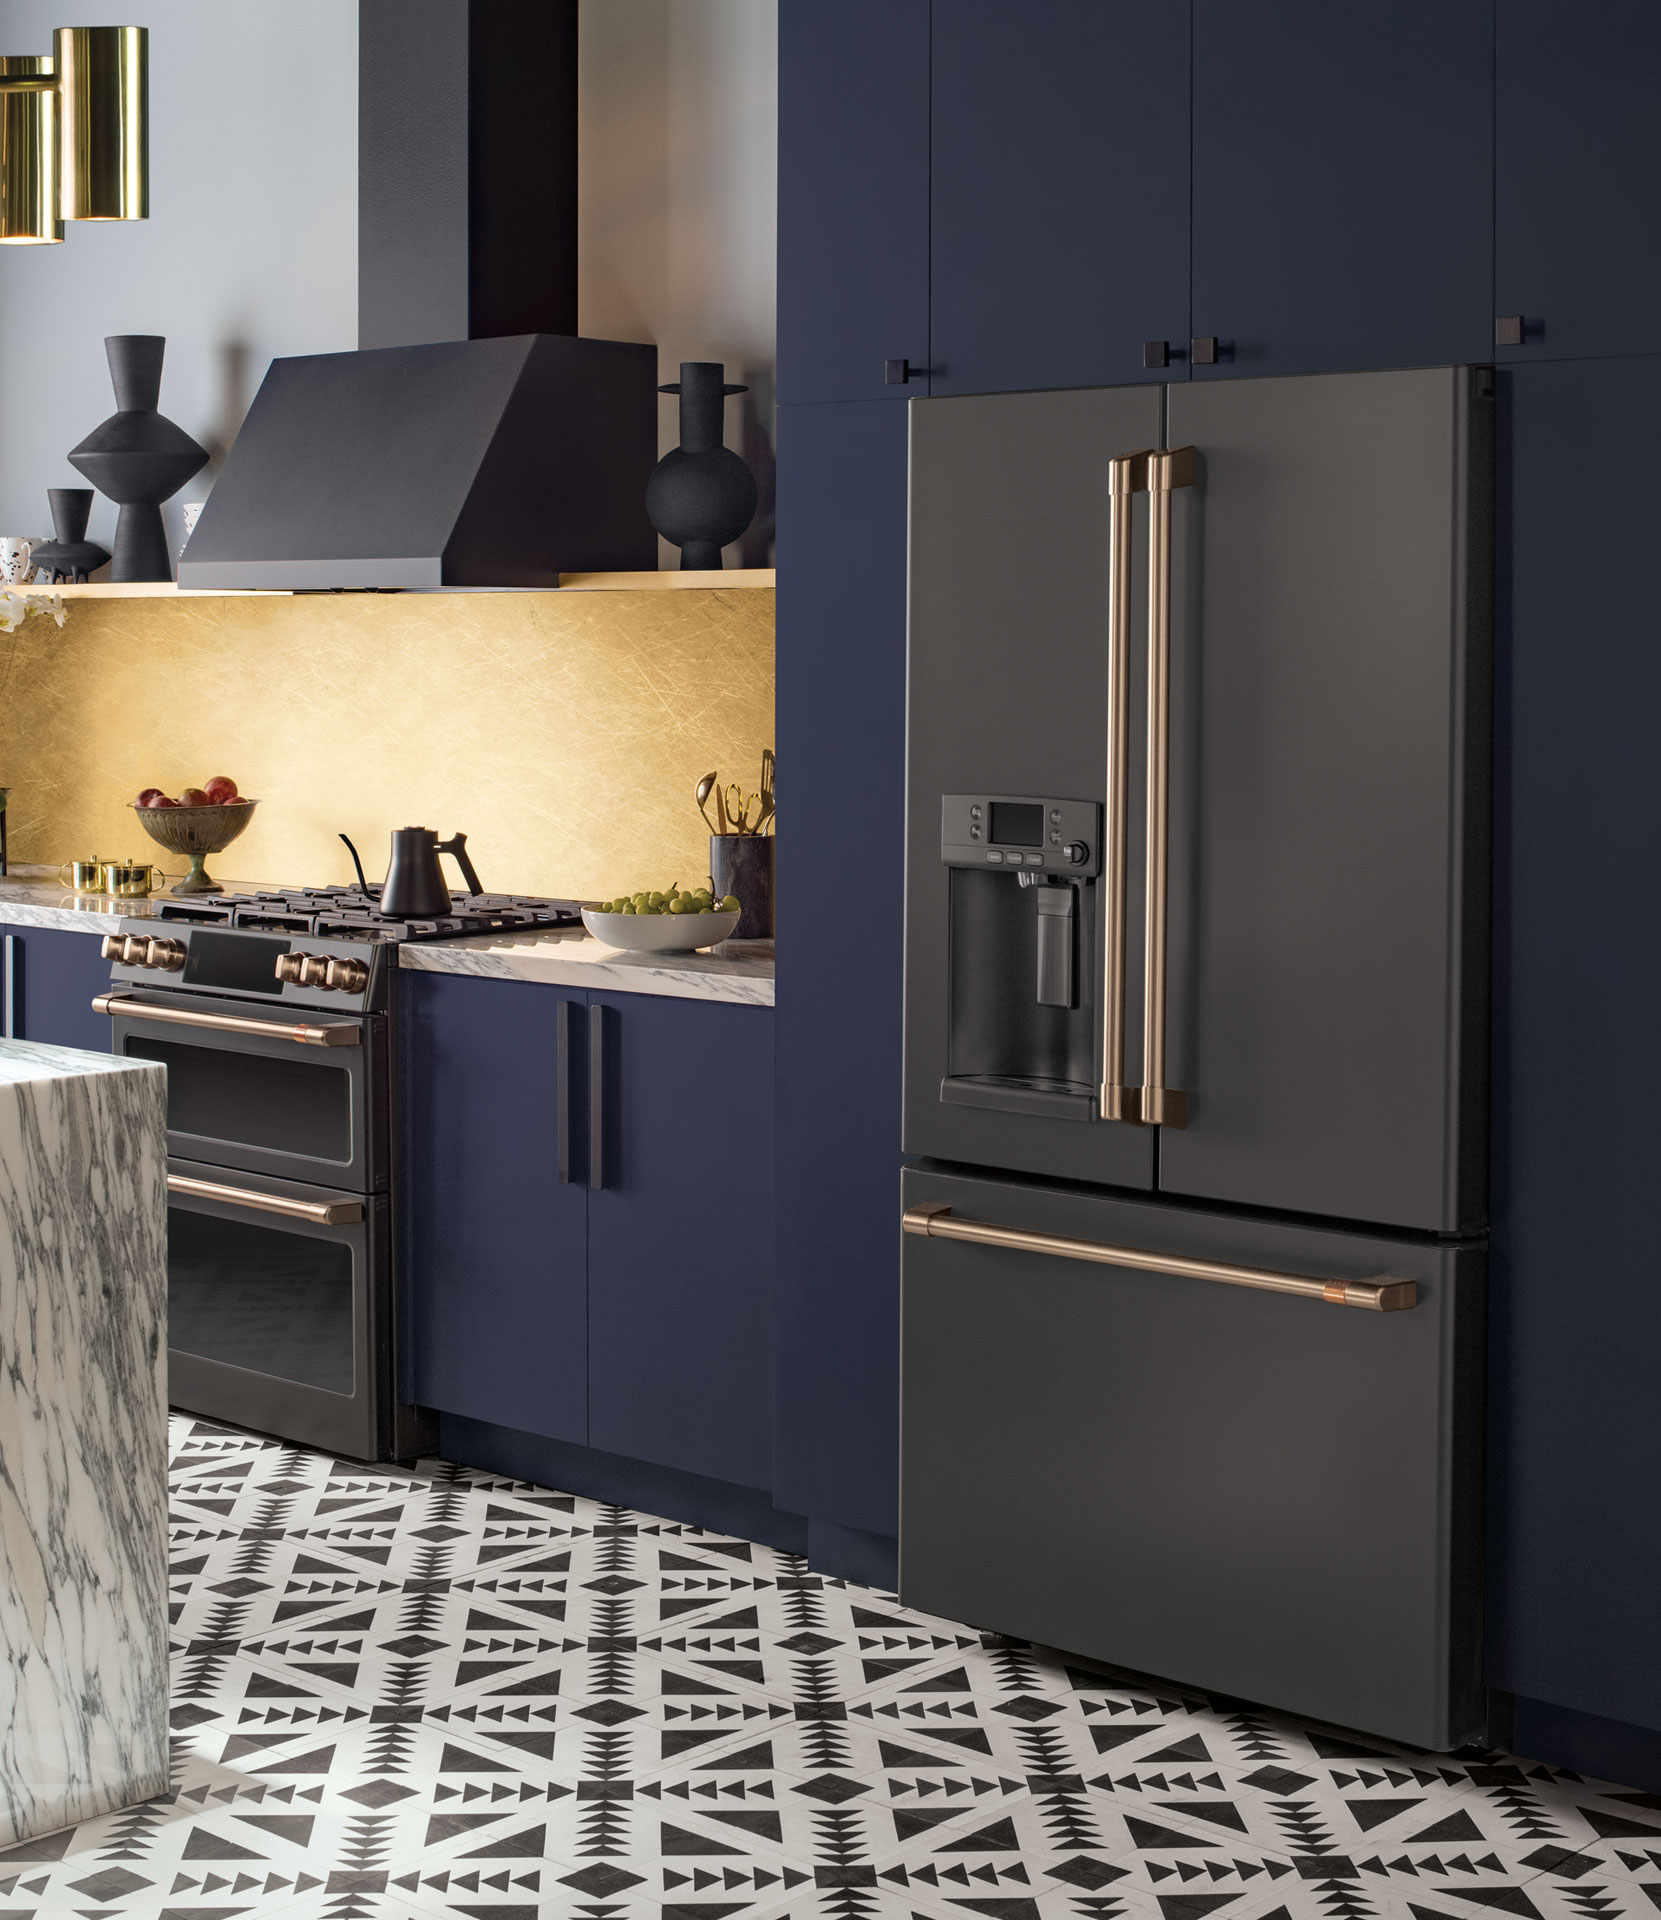 matte black double oven, range hood, and french door refrigerator with blue cabinets